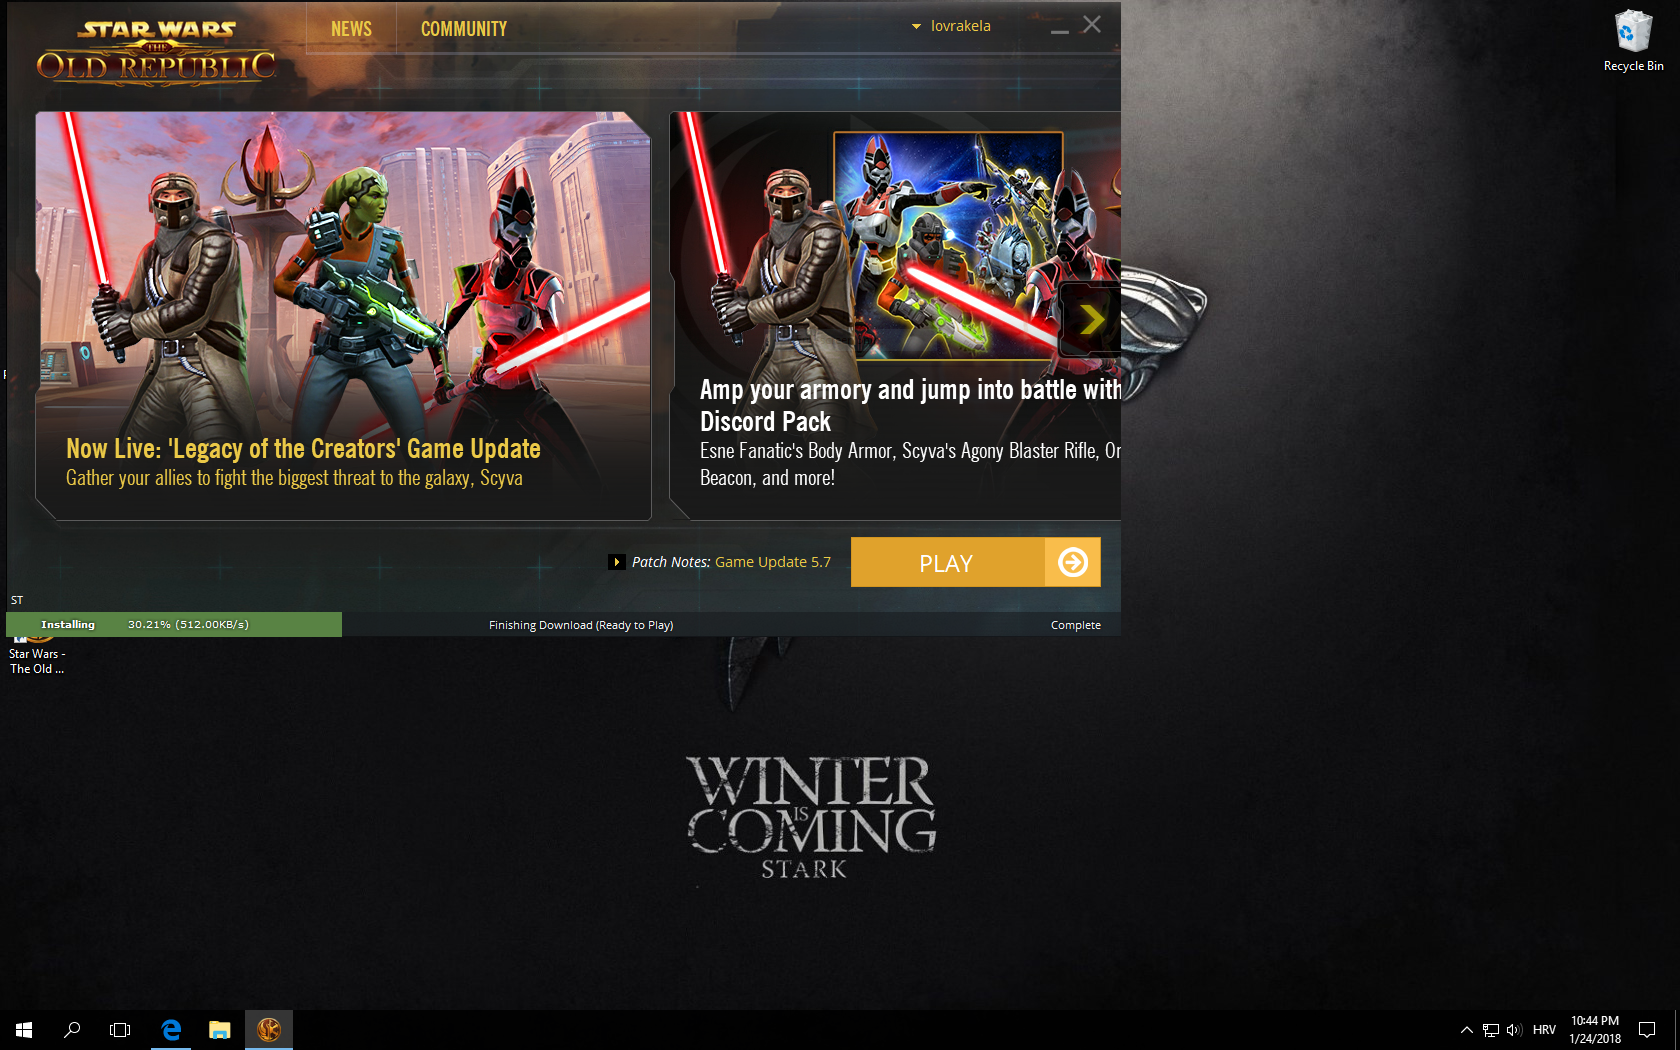 Swtor launcher updating forever site for dating free